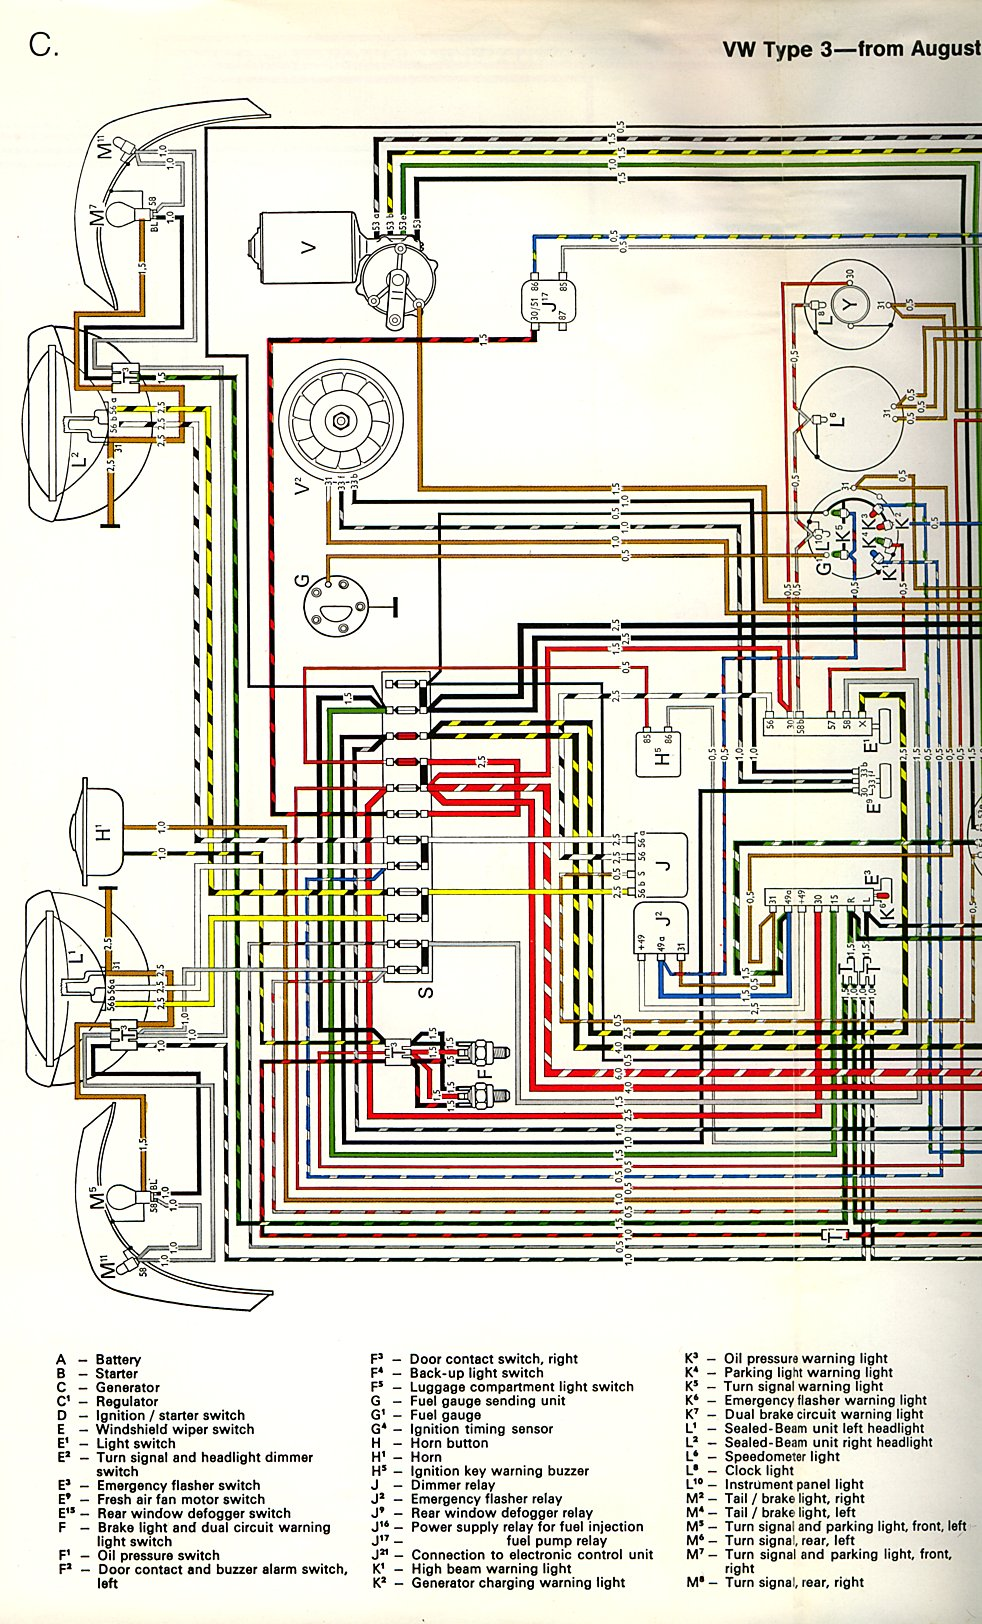 type3_72a thesamba com type 3 wiring diagrams 1973 vw wiring diagram at fashall.co